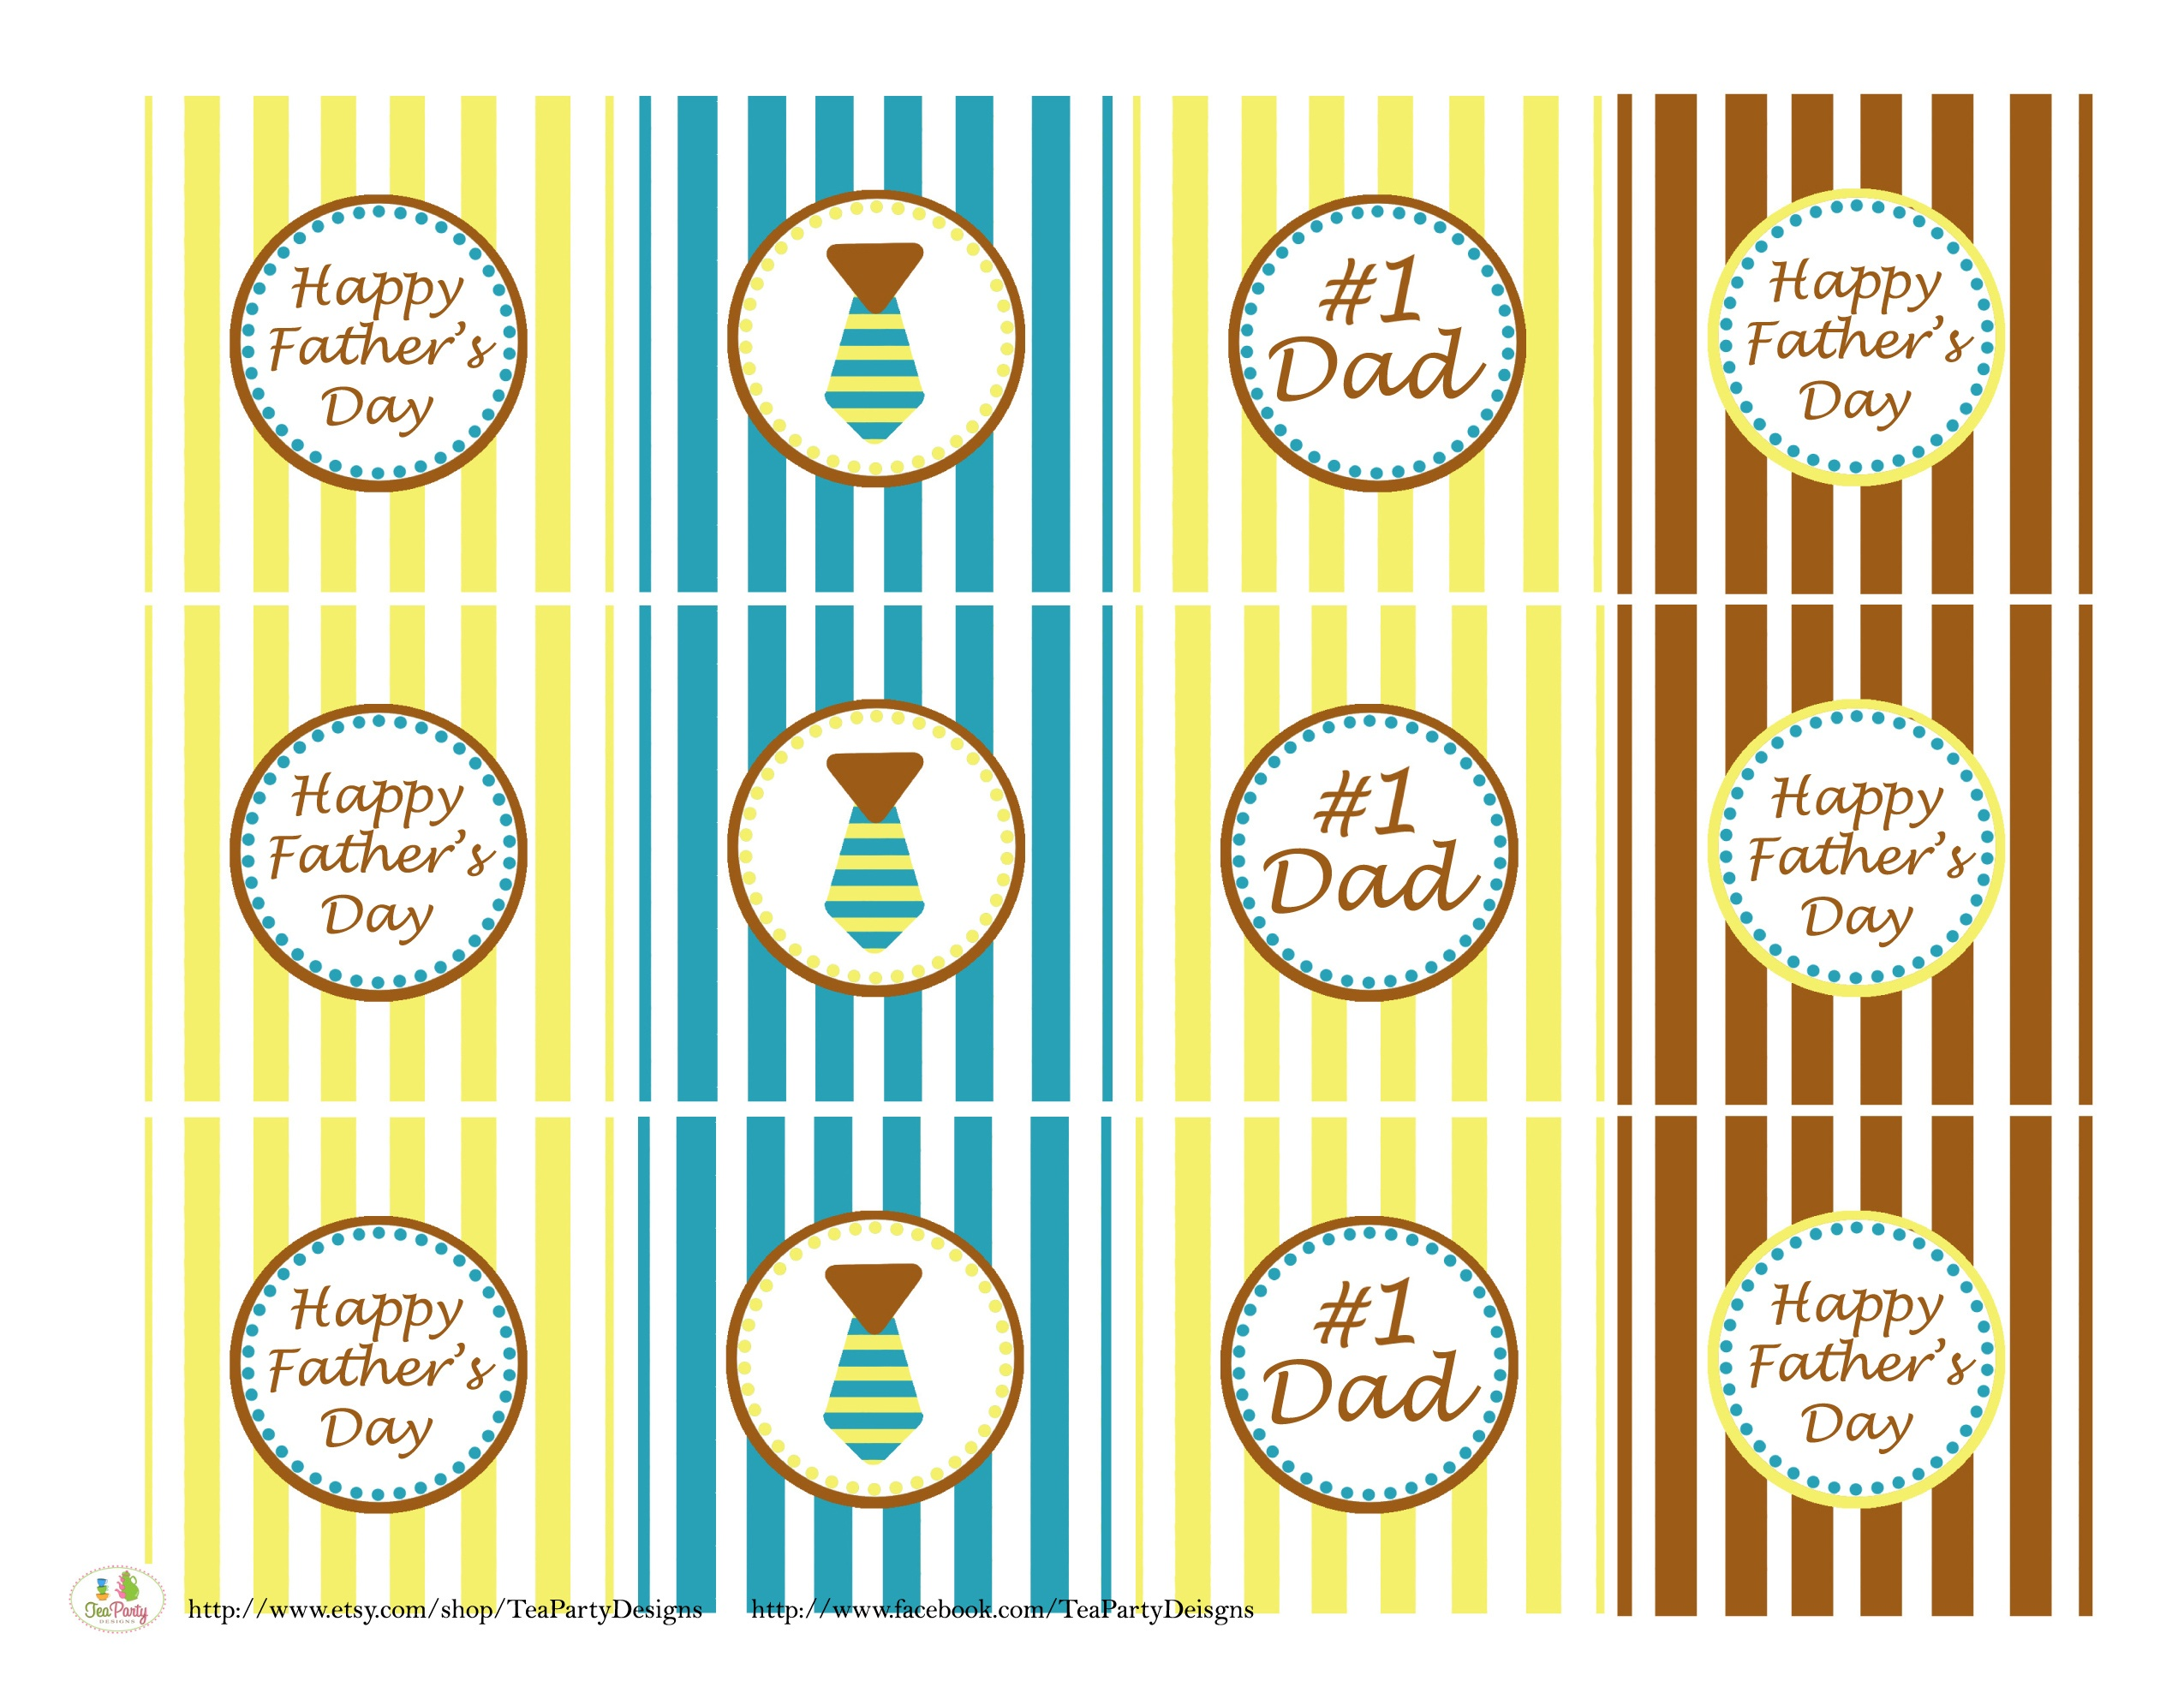 Free Father's Day Printables From Tea Party Designs   Catch My Party - Free Printable Party Circles